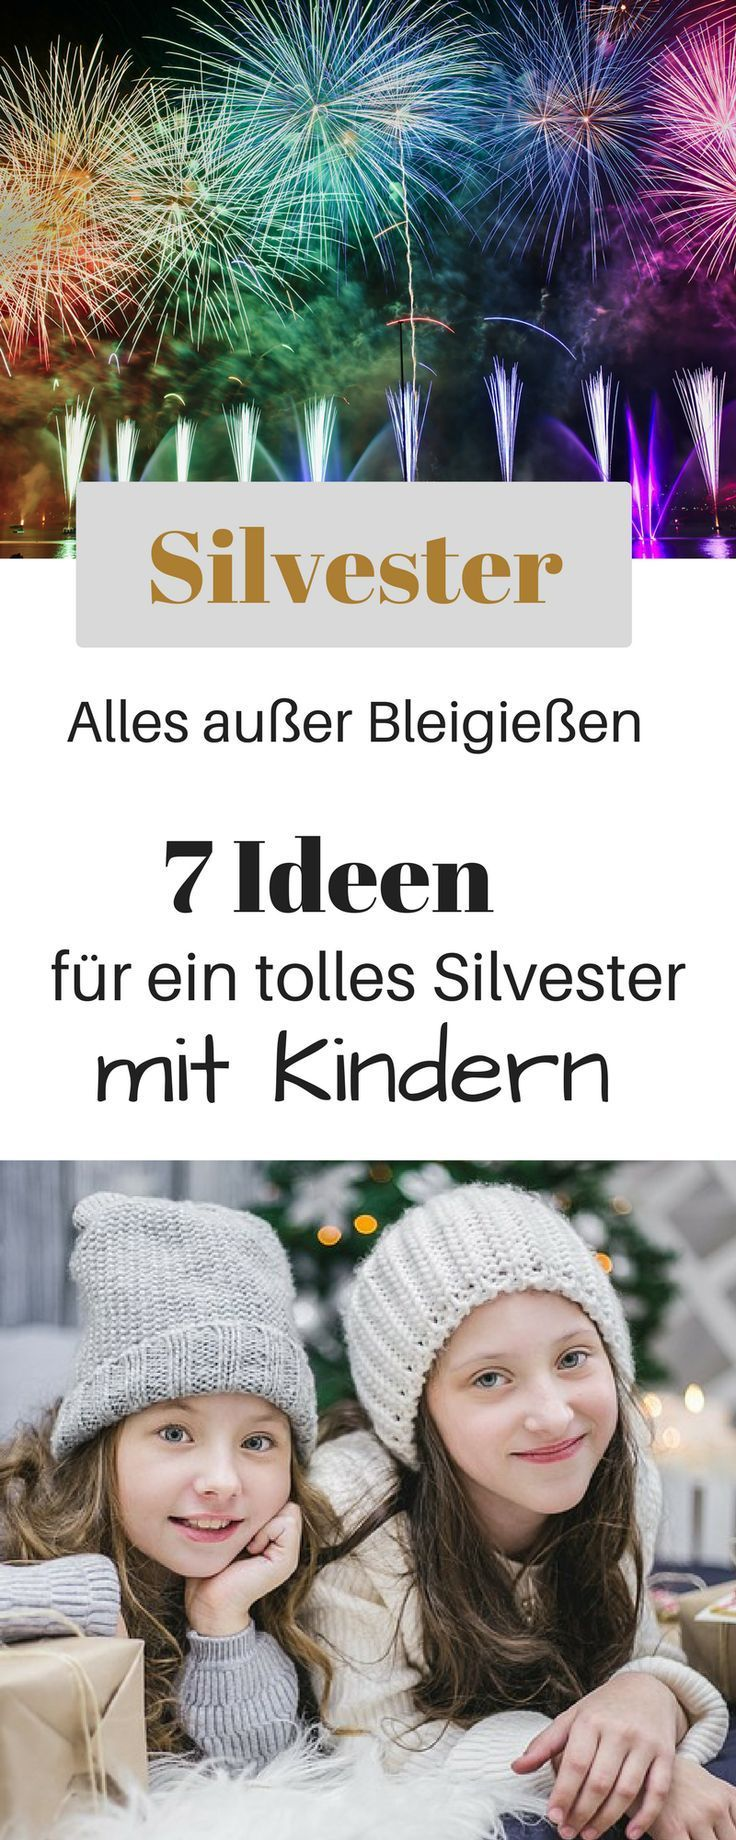 silvester mit kindern feier silvester kinder basteln silvester kinder ideen silvester kinder. Black Bedroom Furniture Sets. Home Design Ideas